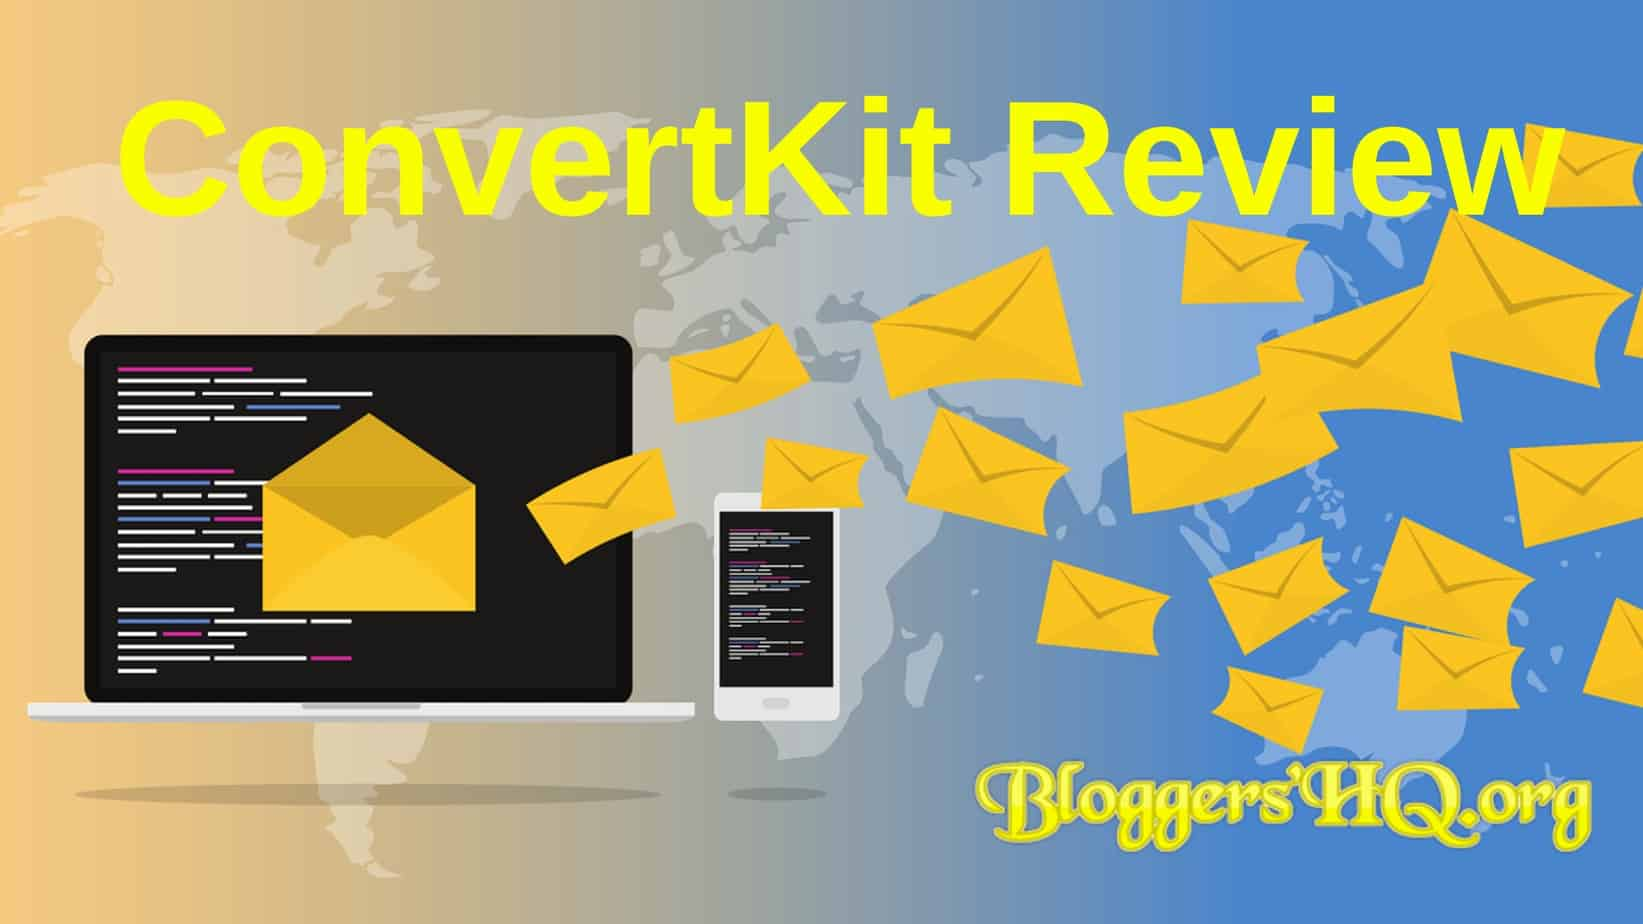 Convertkit Email Marketing Voucher Codes 2020